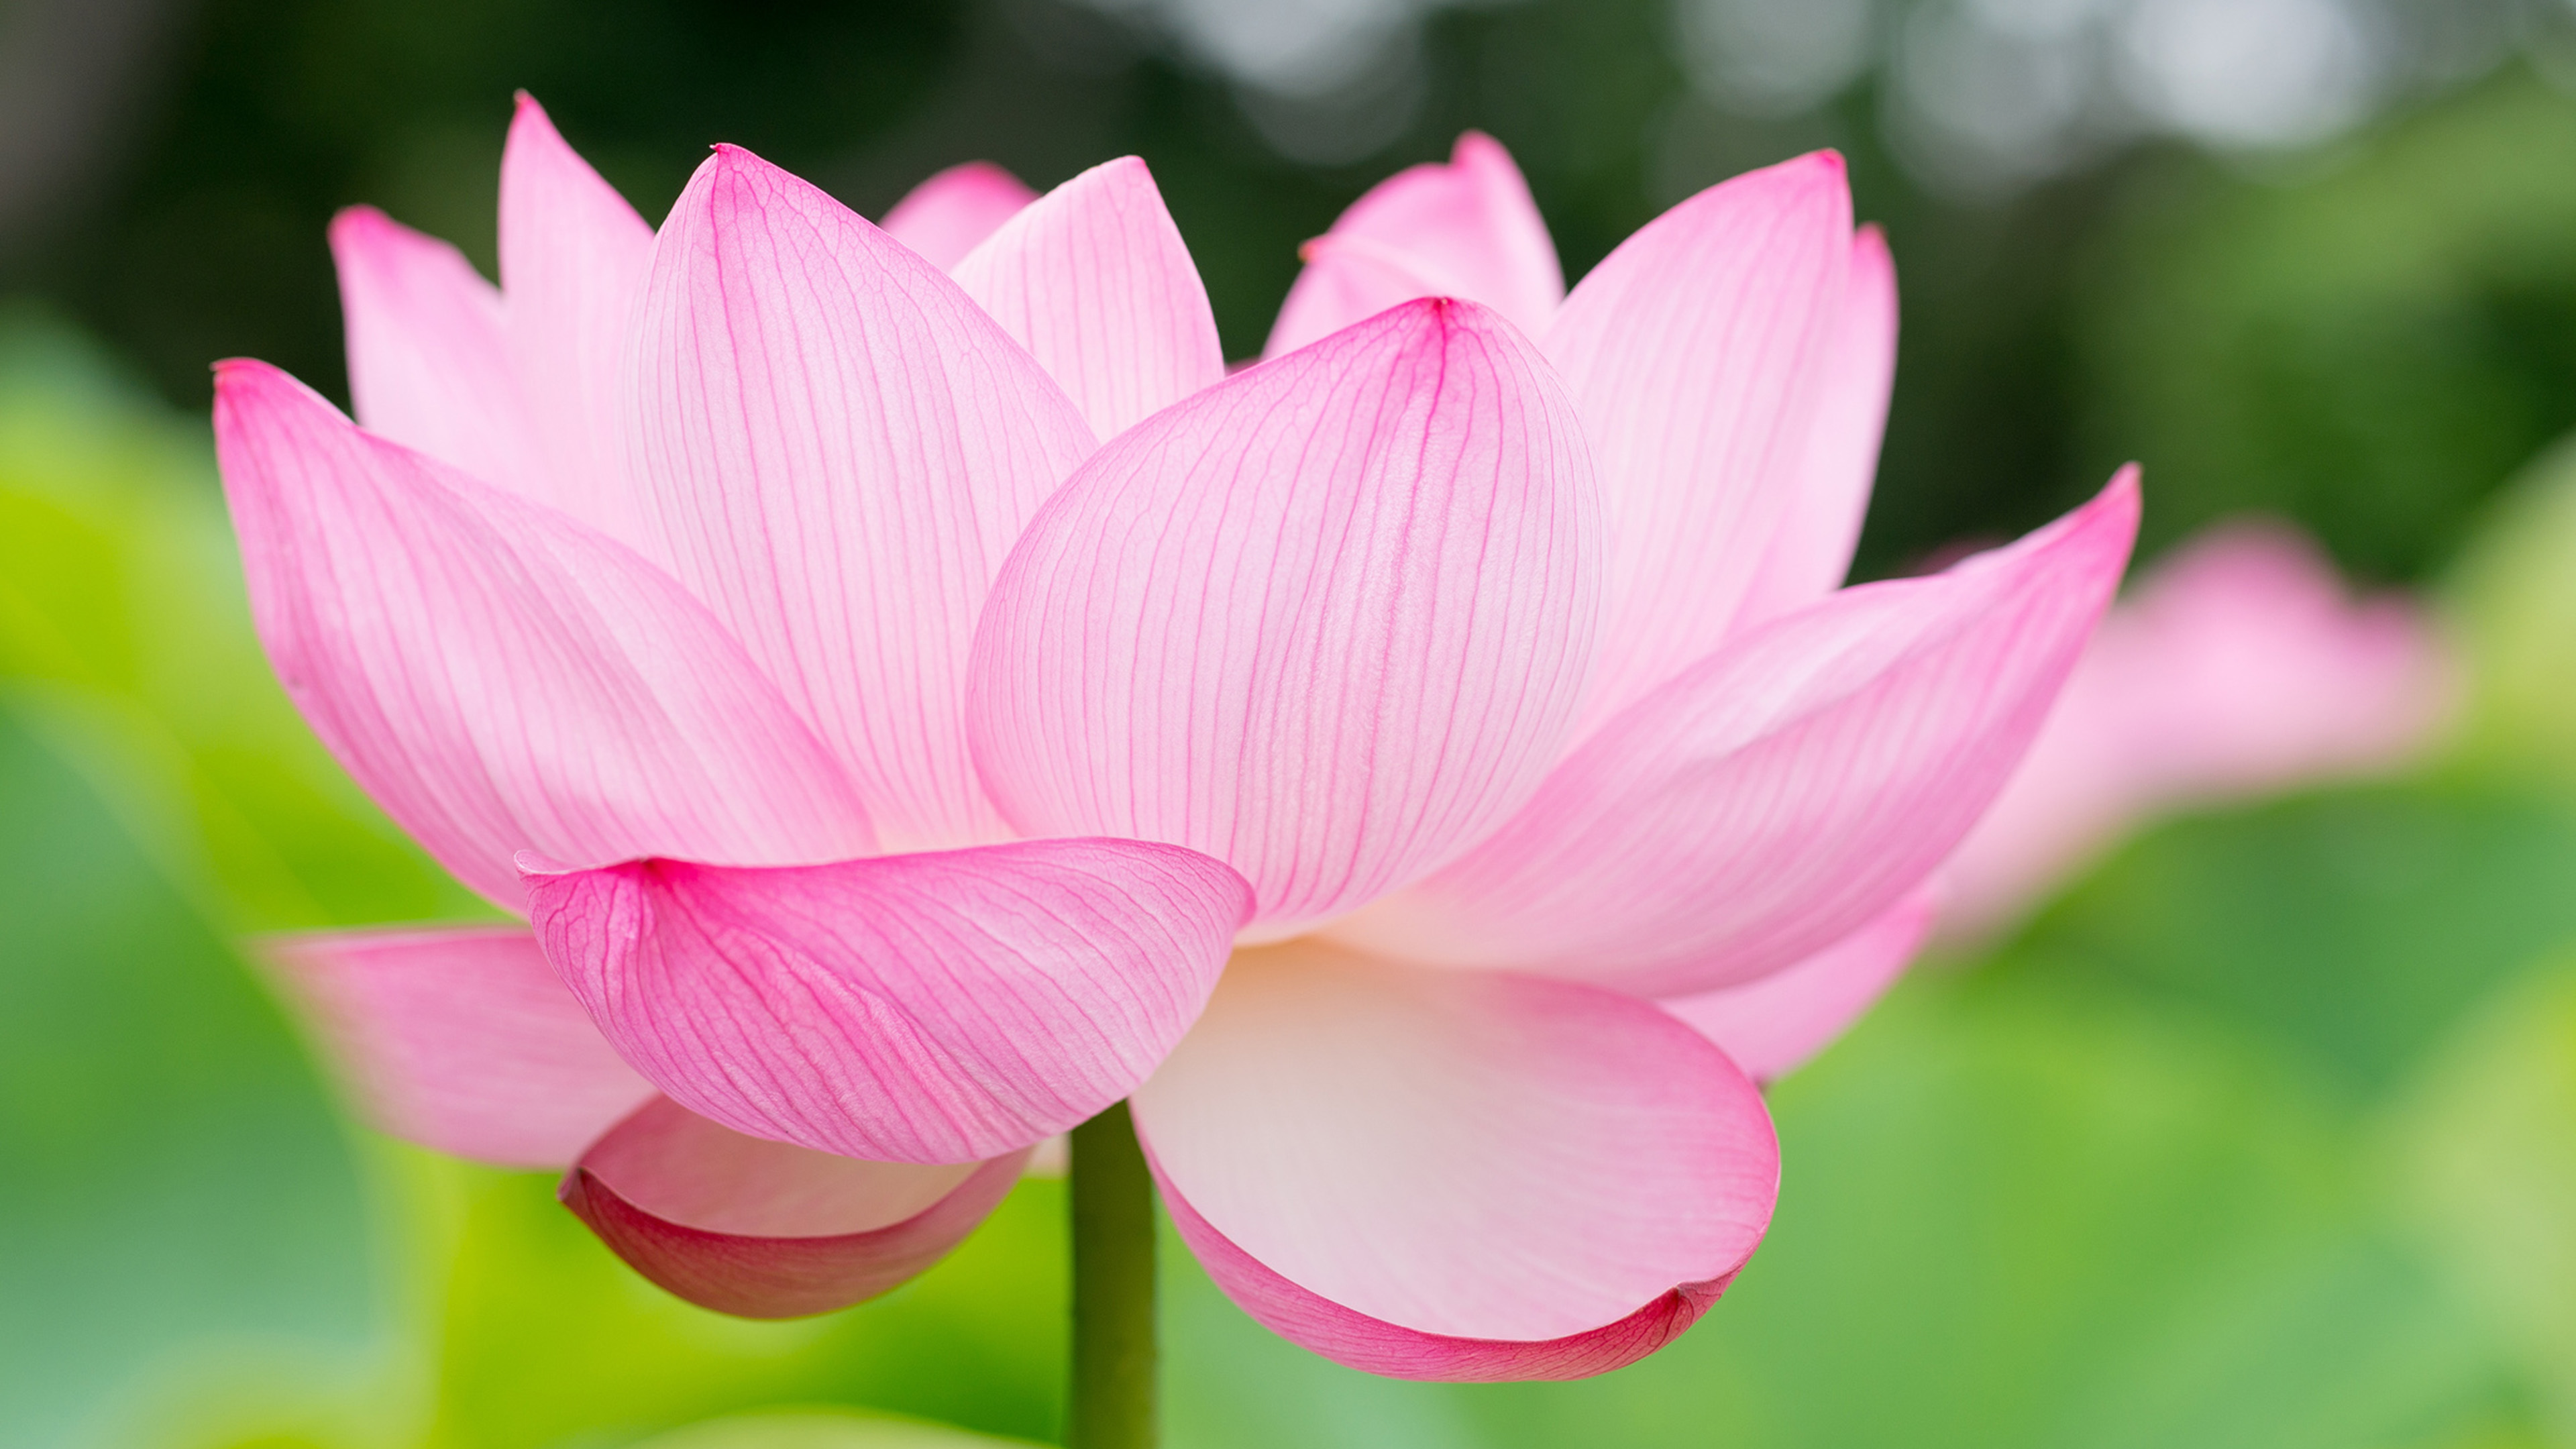 Lotus flower wallpapers pictures images lotus flower wallpaper mightylinksfo